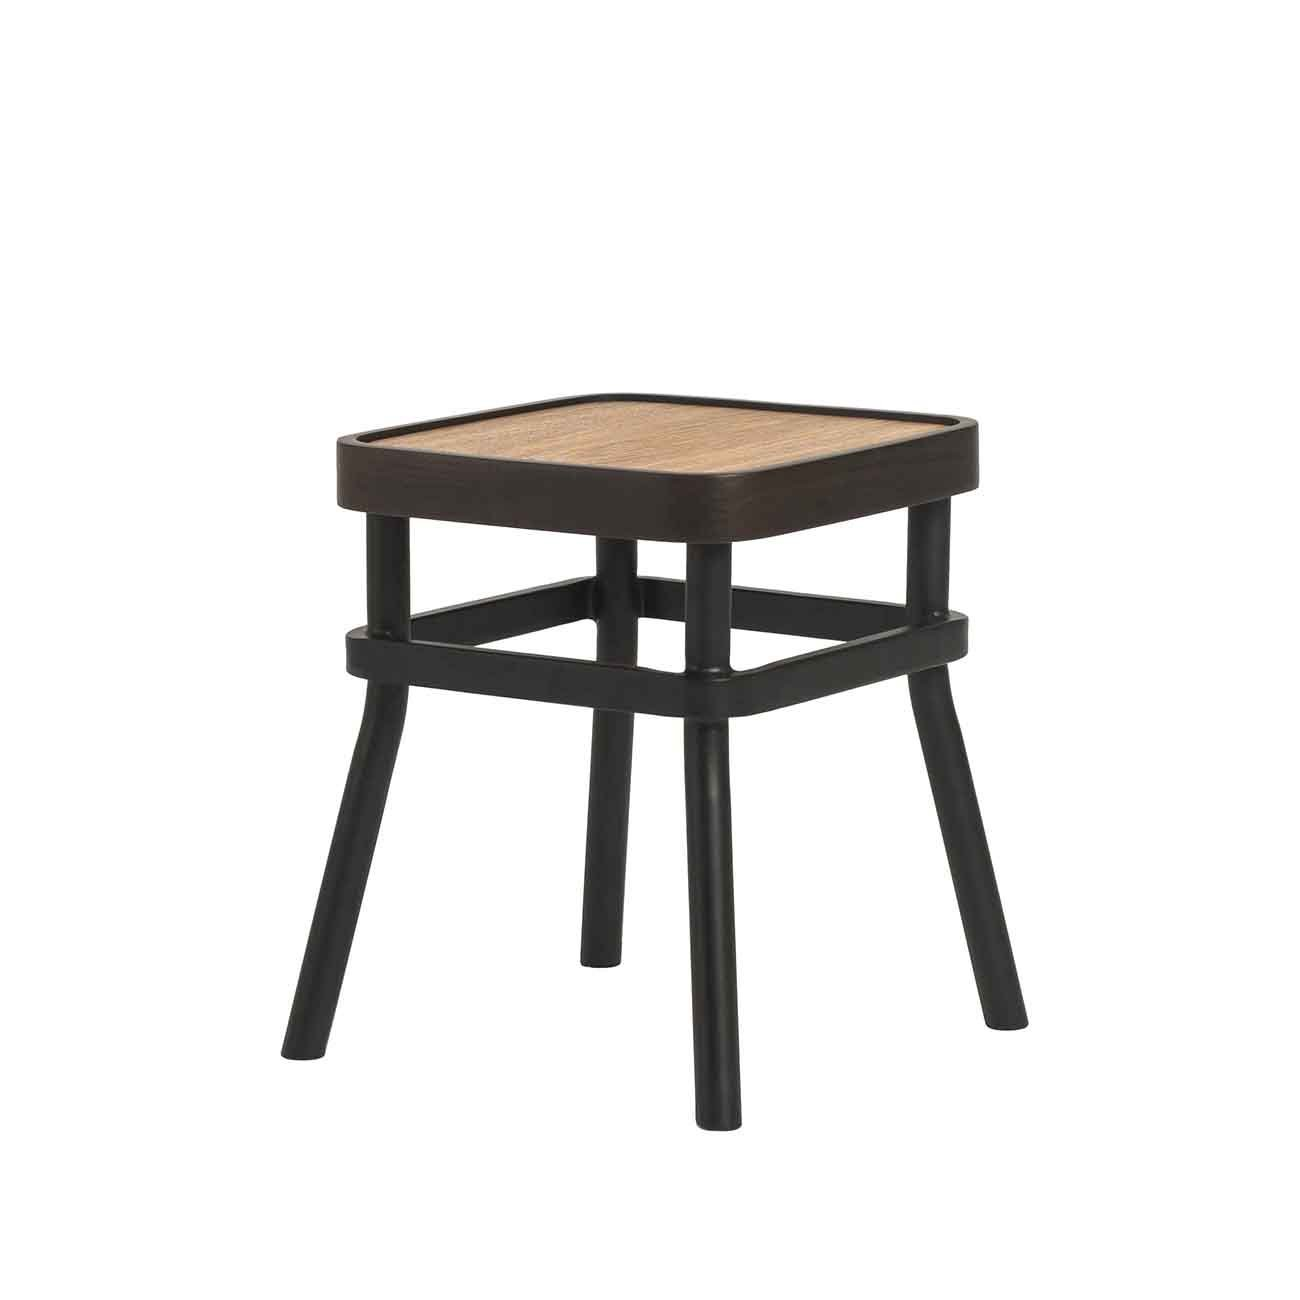 [FEB6249BLKA] Chômchôm Stool sale